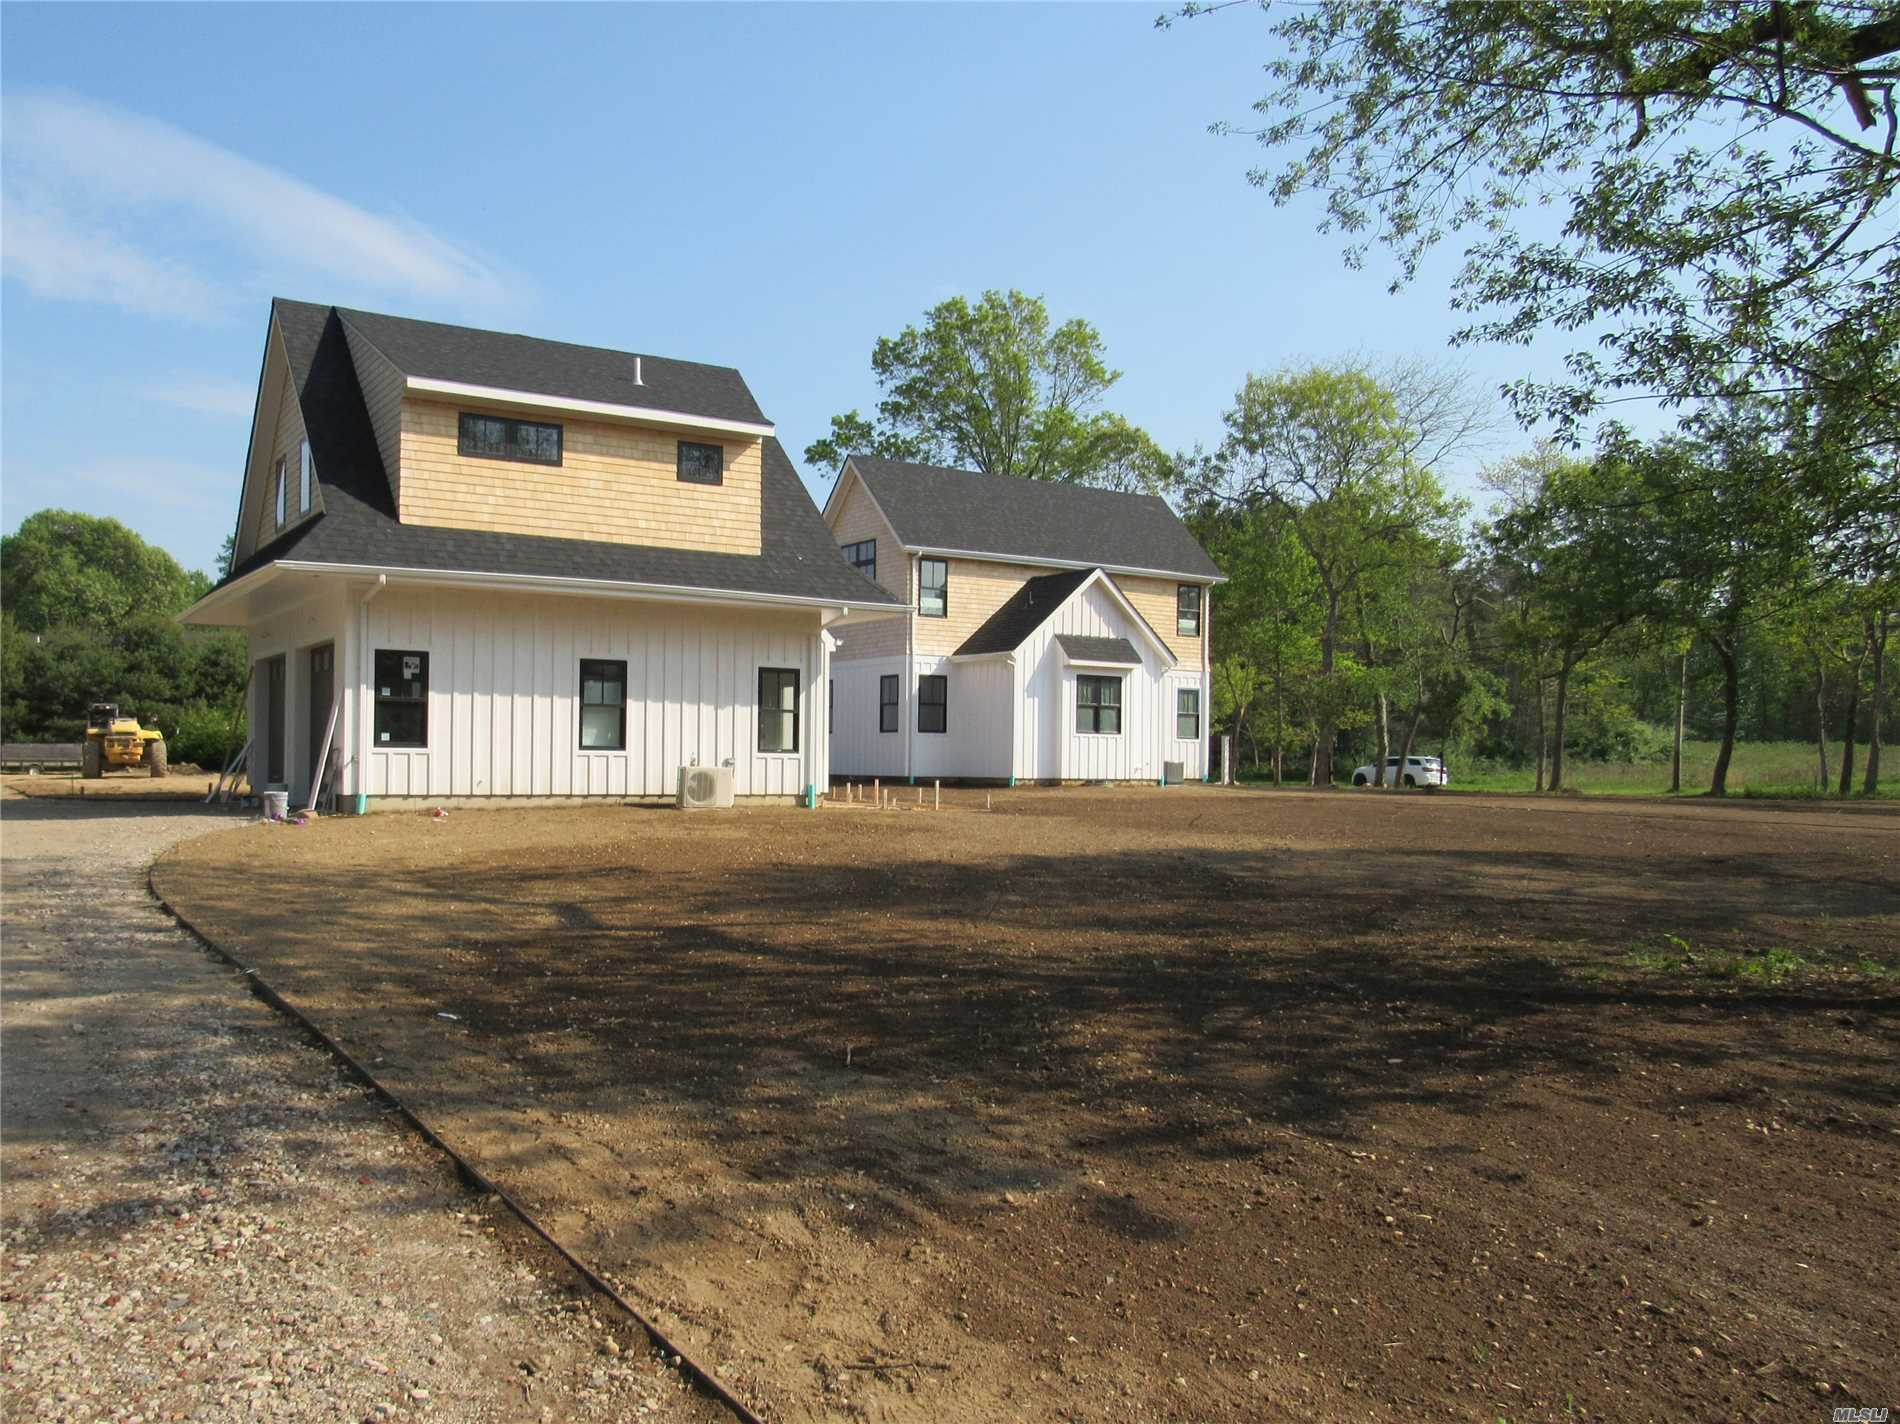 This Well Thought Out Property Is Designed For A 3, 868 Square Feet Home With 2 Master Suites And 3 Additional Bedrooms With Bathrooms, The Kitchen Is Suited For Any Cook. The Garage Has A Living Space Above For Additional Guests. Also A Pool House And A 20X40 Gunite Pool. If This Sounds Amazing It Gets Better, Right Now The Finishes Could Be To Your Liking.